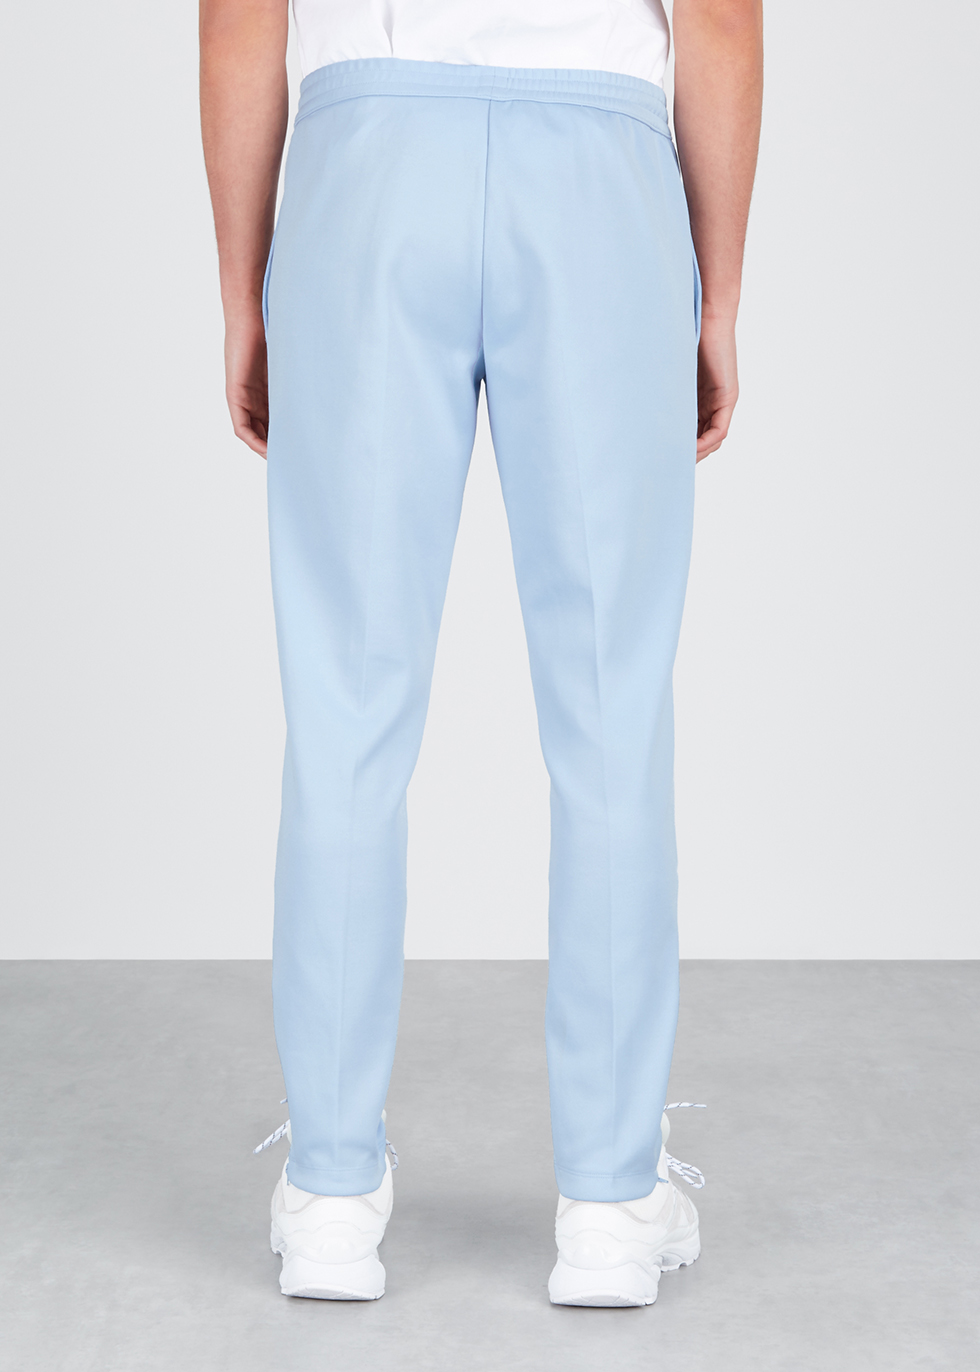 Stirrup light blue jersey sweatpants - Helmut Lang